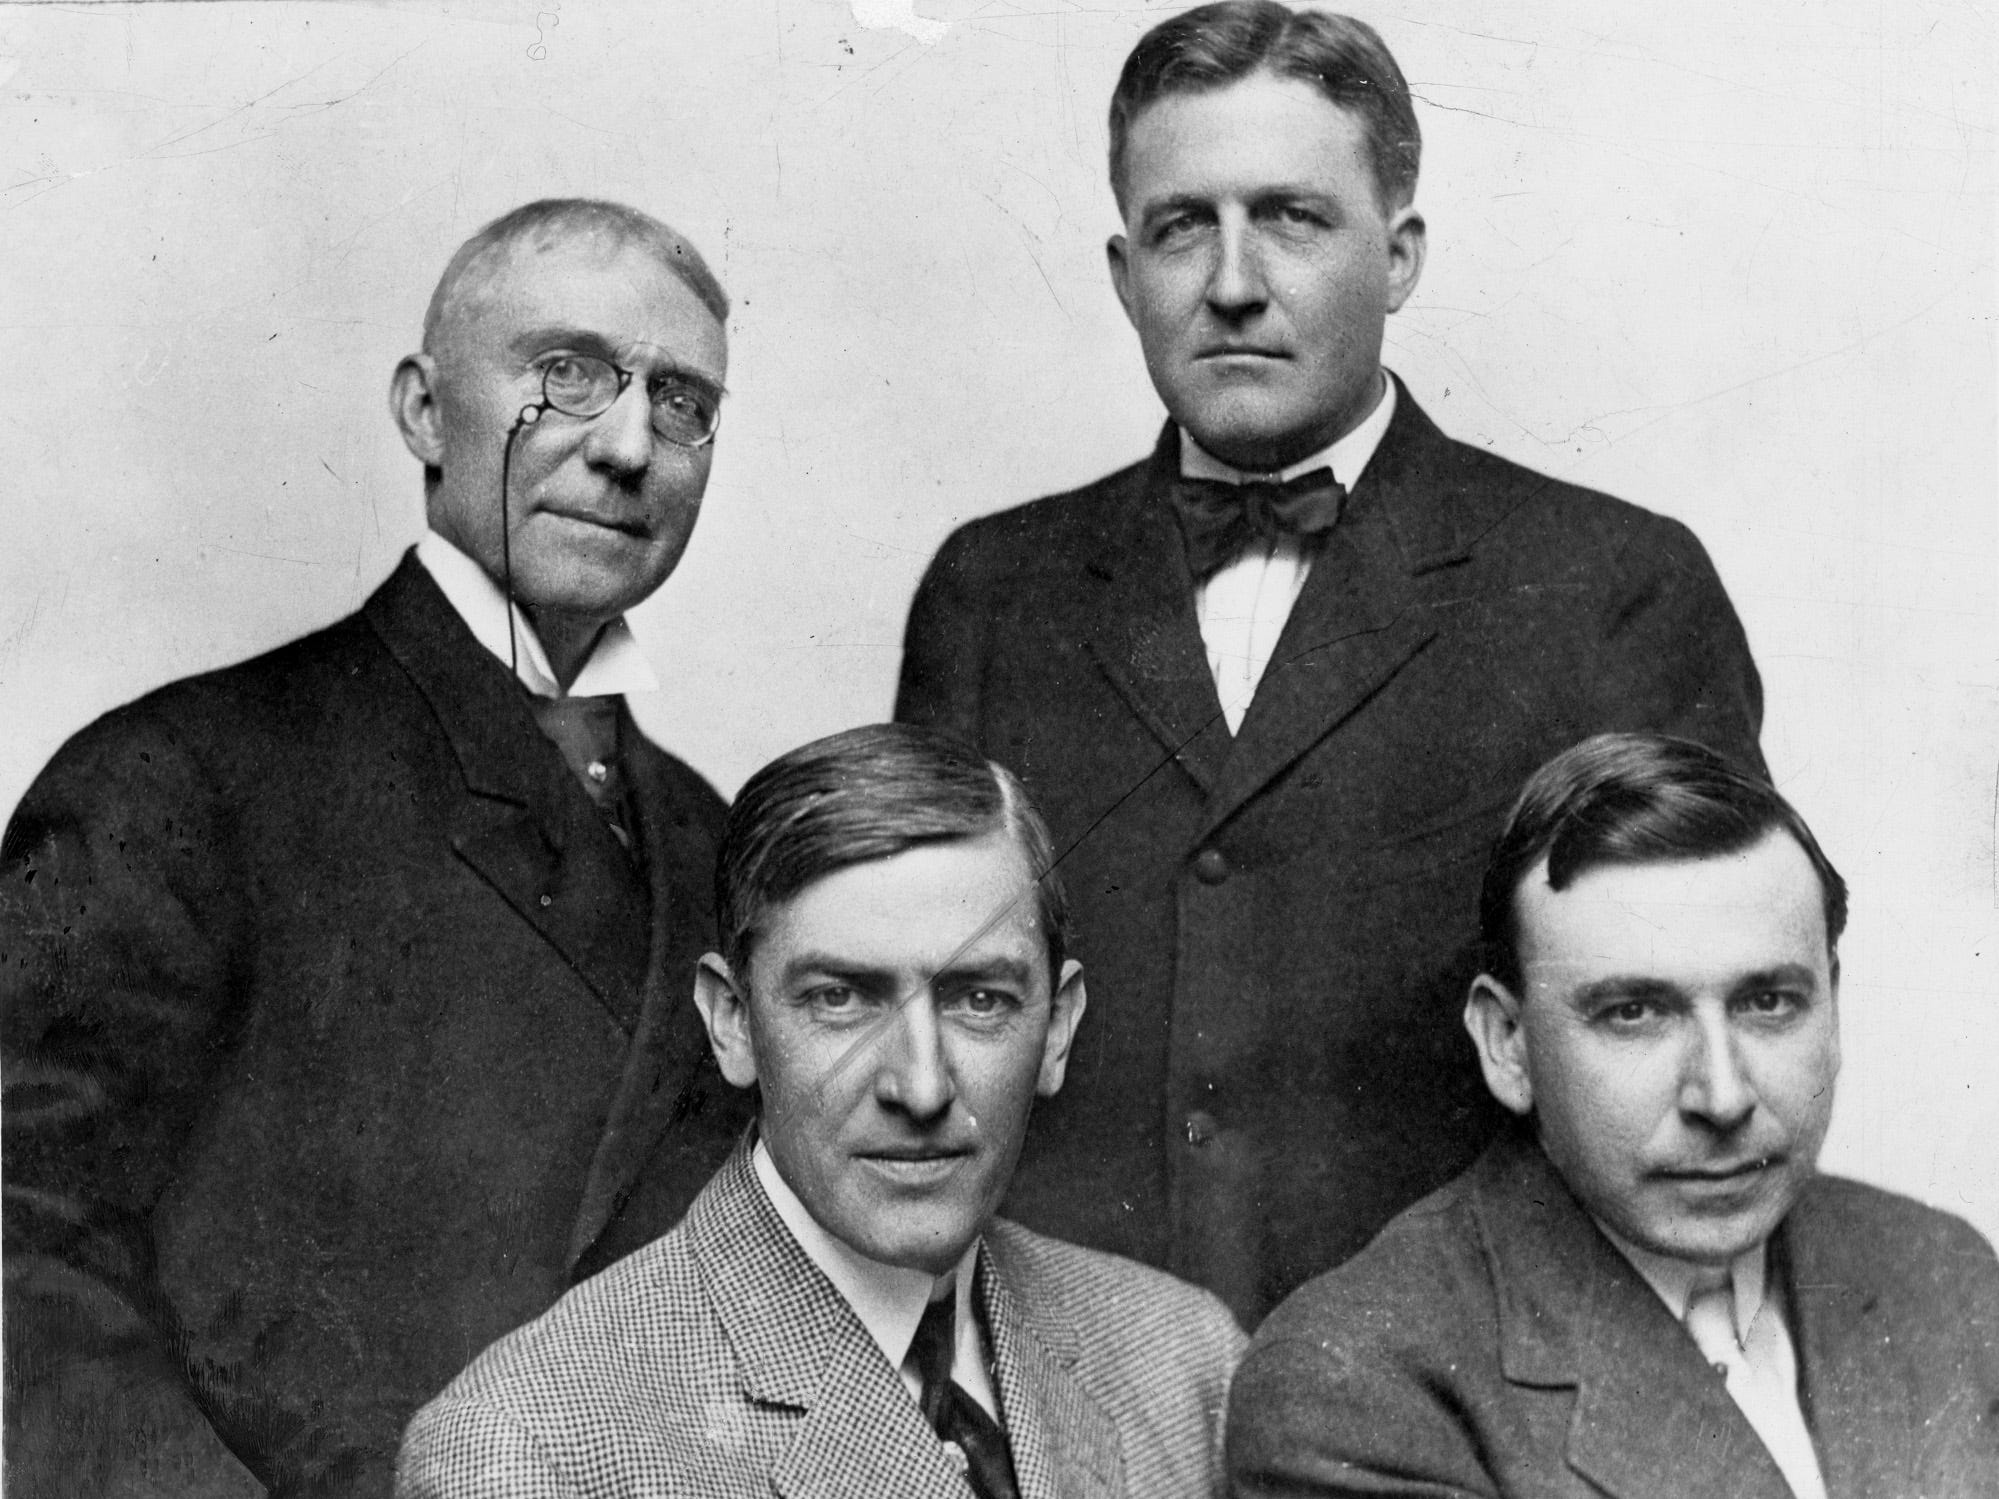 Four famous Hoosier writers: Front, left is George Ade of Kentland; front right is Booth Tarkington of Indianapolis. Back row left if James Whitcomb Riley and back right is Meredith Nicholson (former Indianapolis News reporter). Staff photo, 1910.